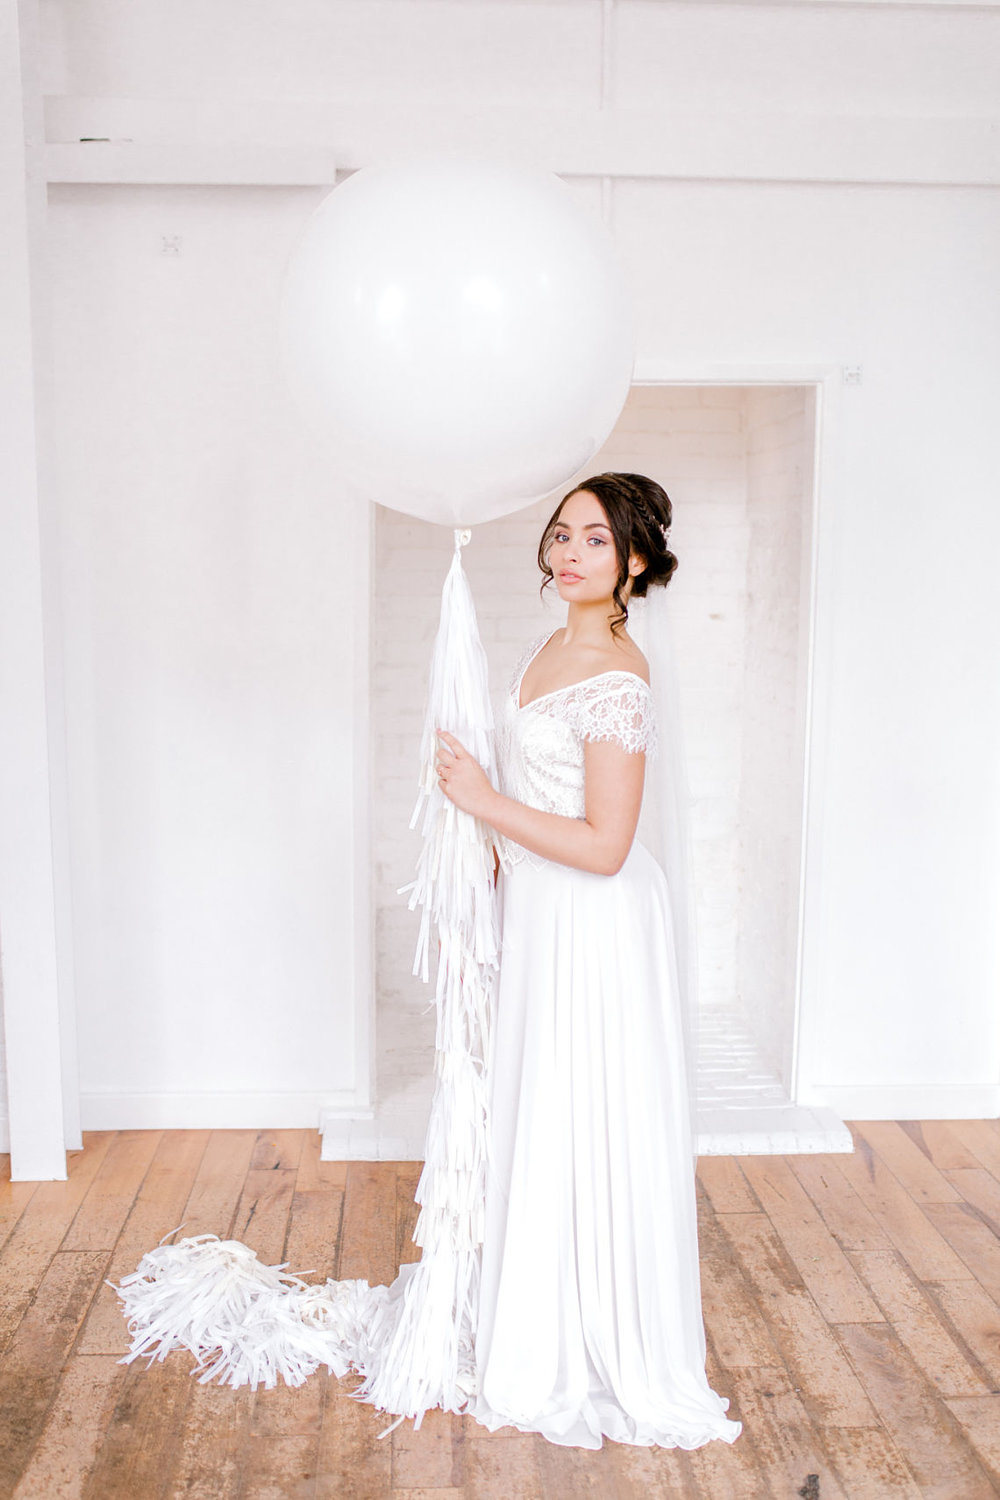 bridal shots - giant balloon - wedding day photography - essex wedding planner